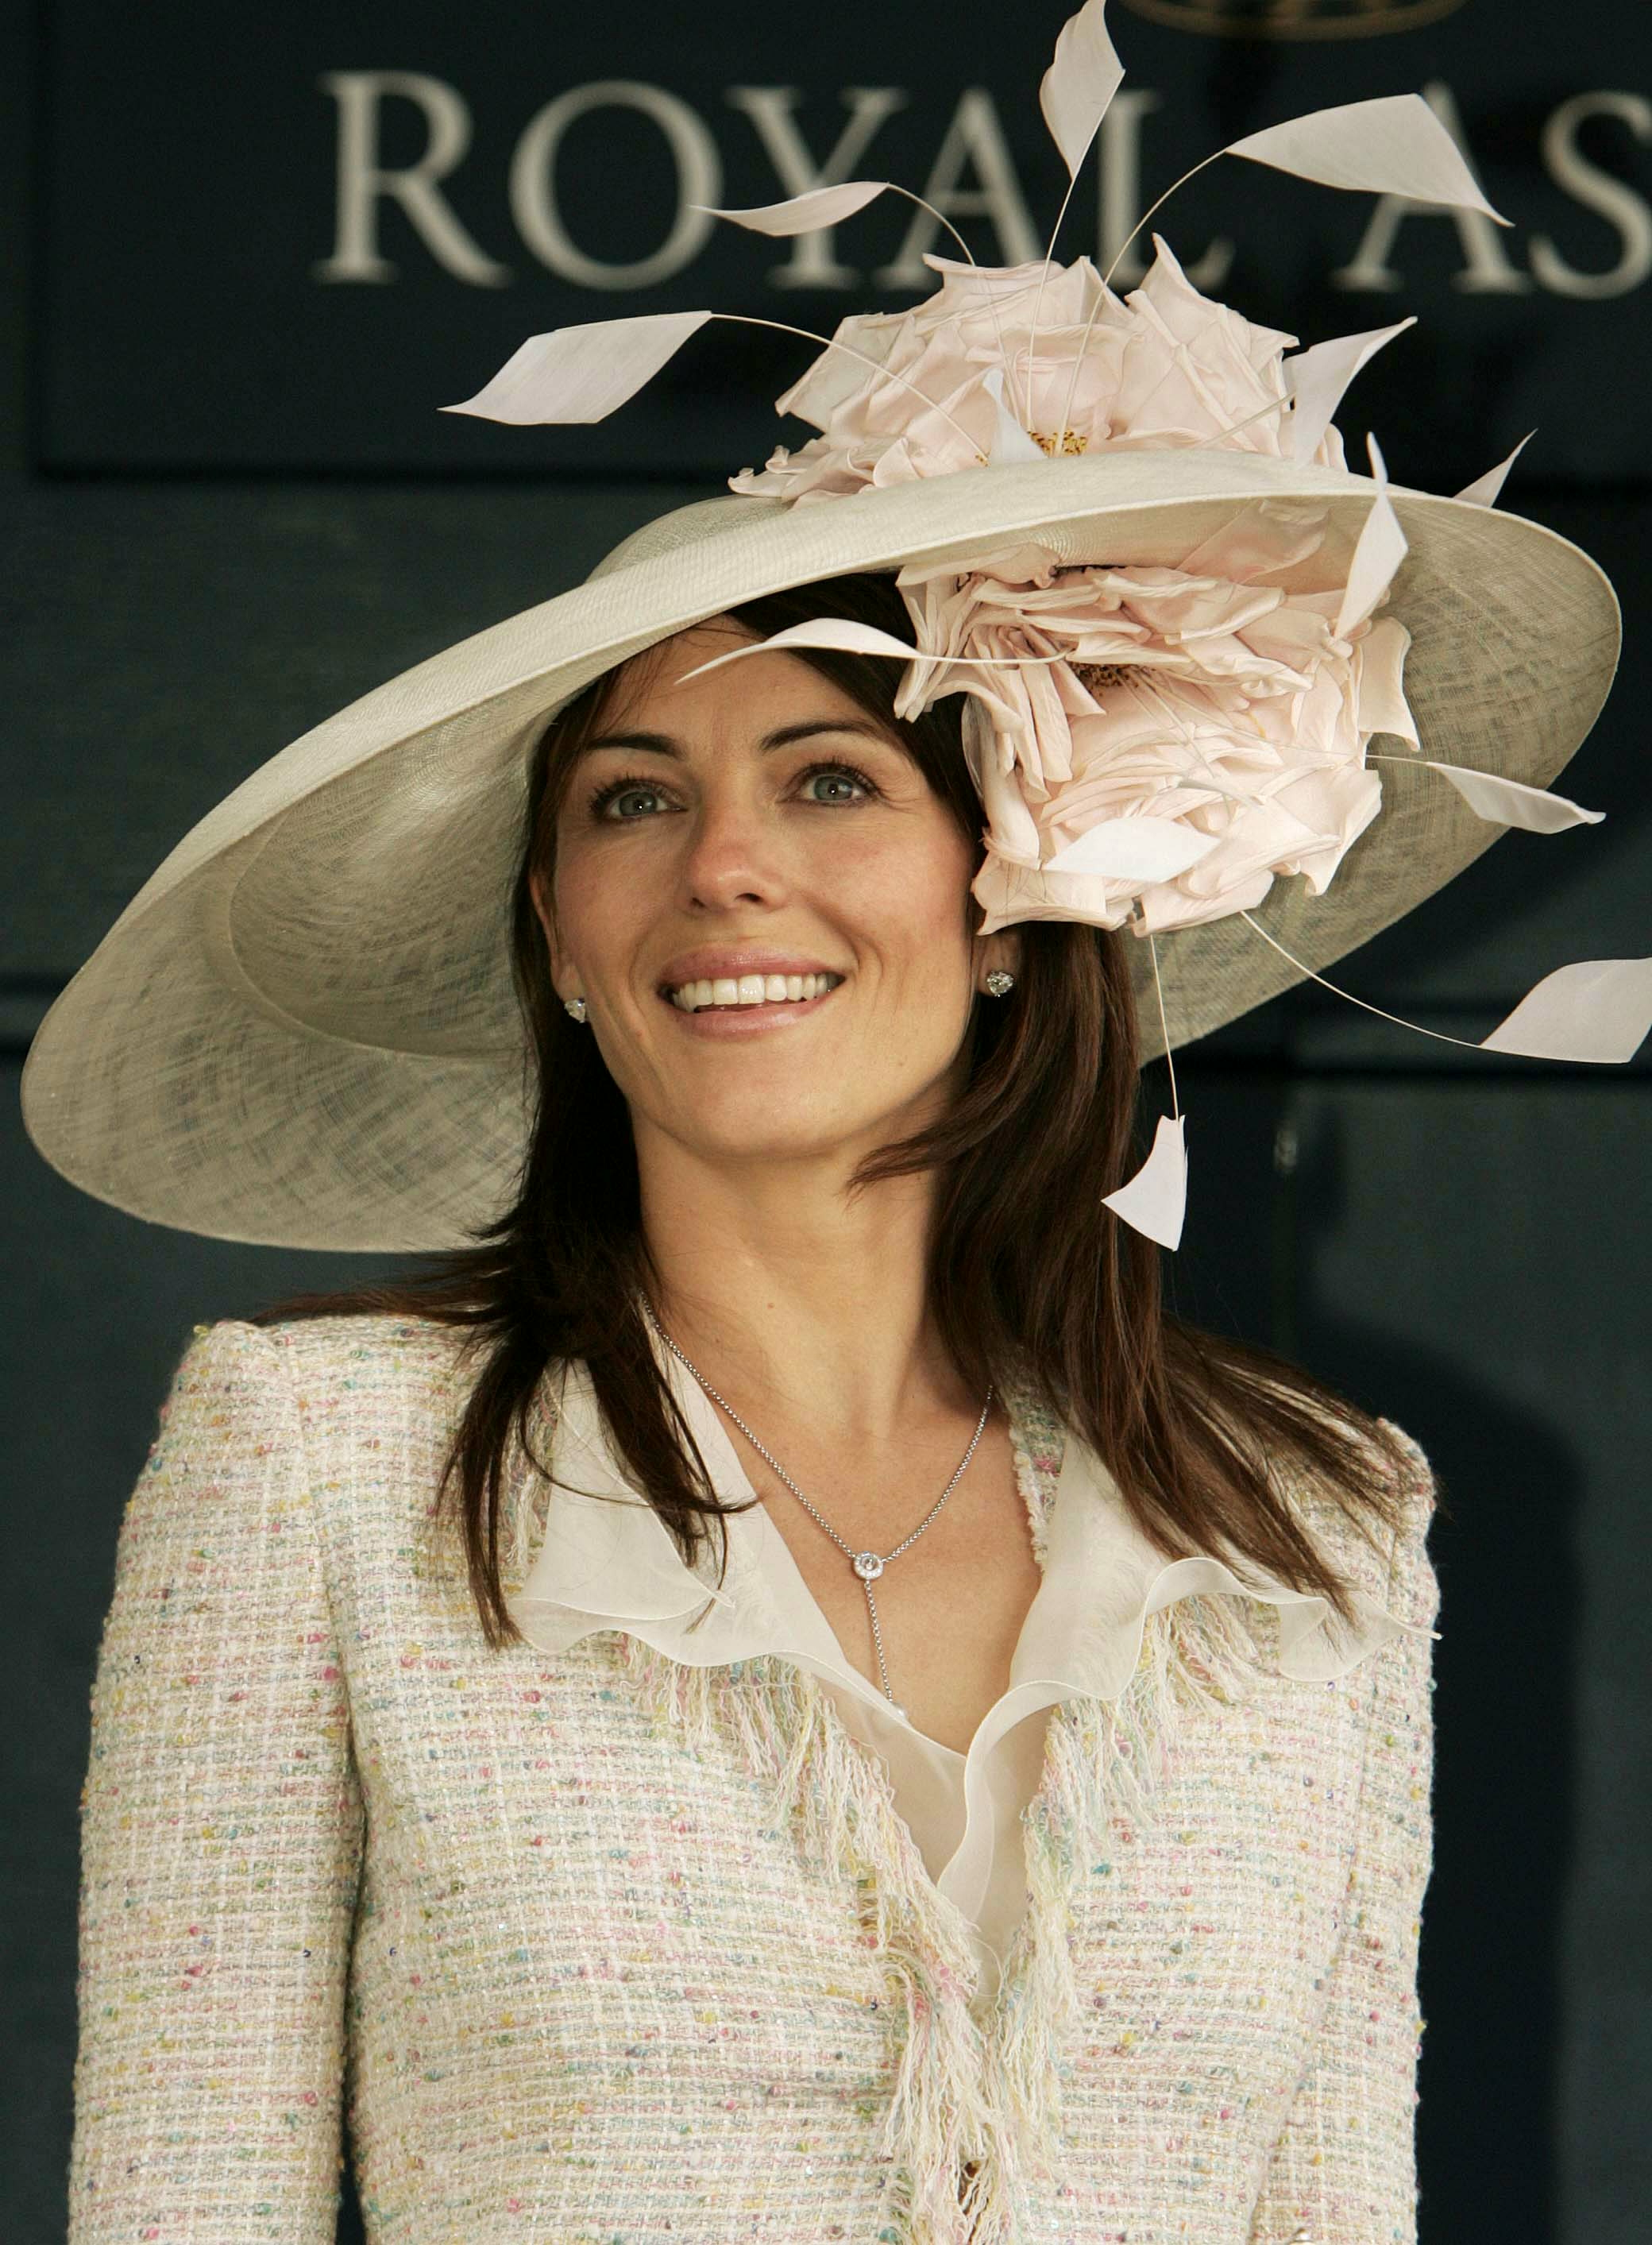 British actress Elizabeth Hurley attends Ladies Day at the Royal Ascot race meeting in southern England, June 17, 2004.